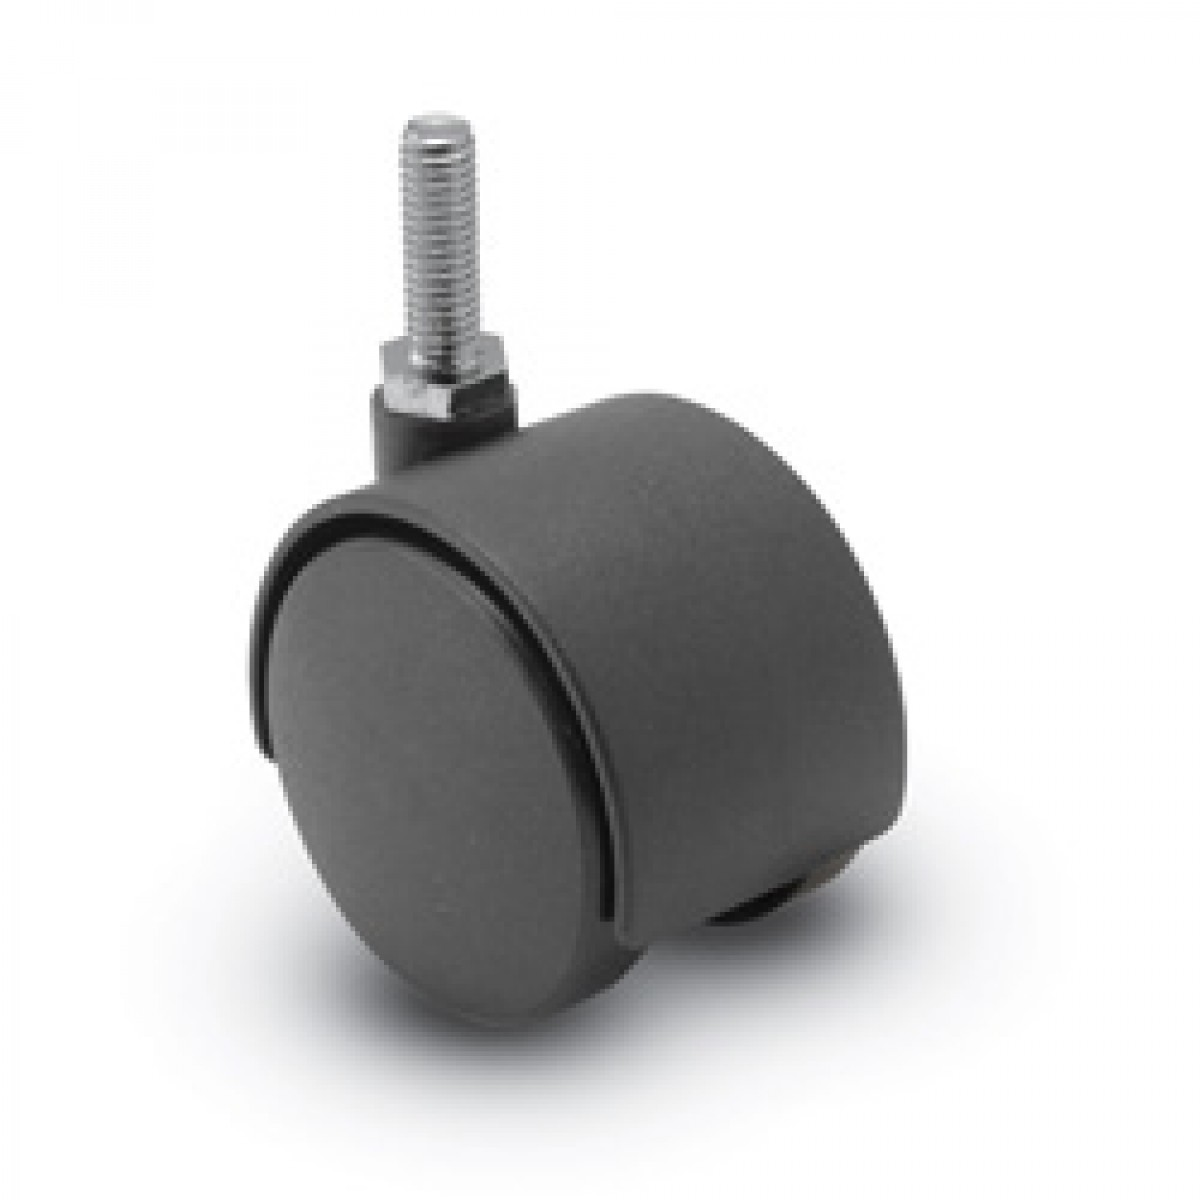 Overbed Table Casters Hospital Furniture Casters